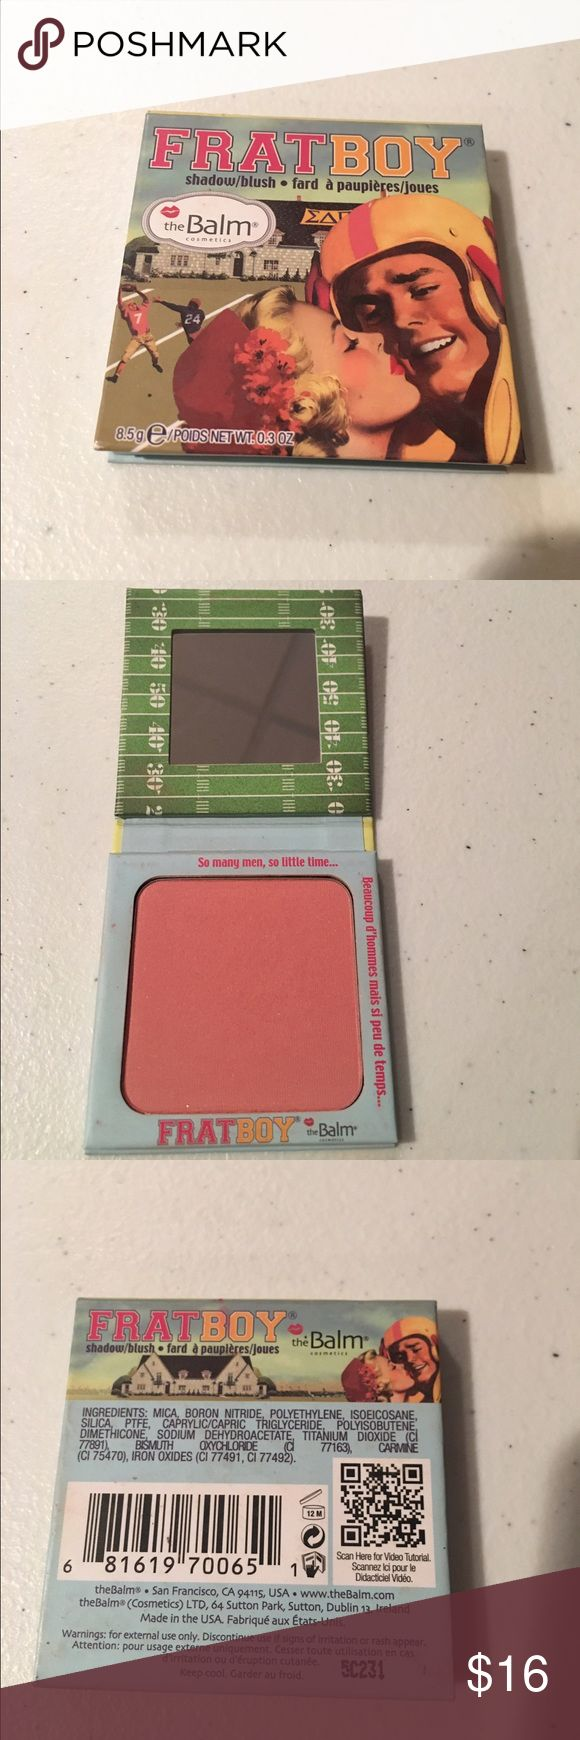 The Balm Frat boy blush The balm fray boy blush/shadow. Barely used, bought and realized I had a very similar shade so selling this one. Great condition. The Balm Makeup Blush